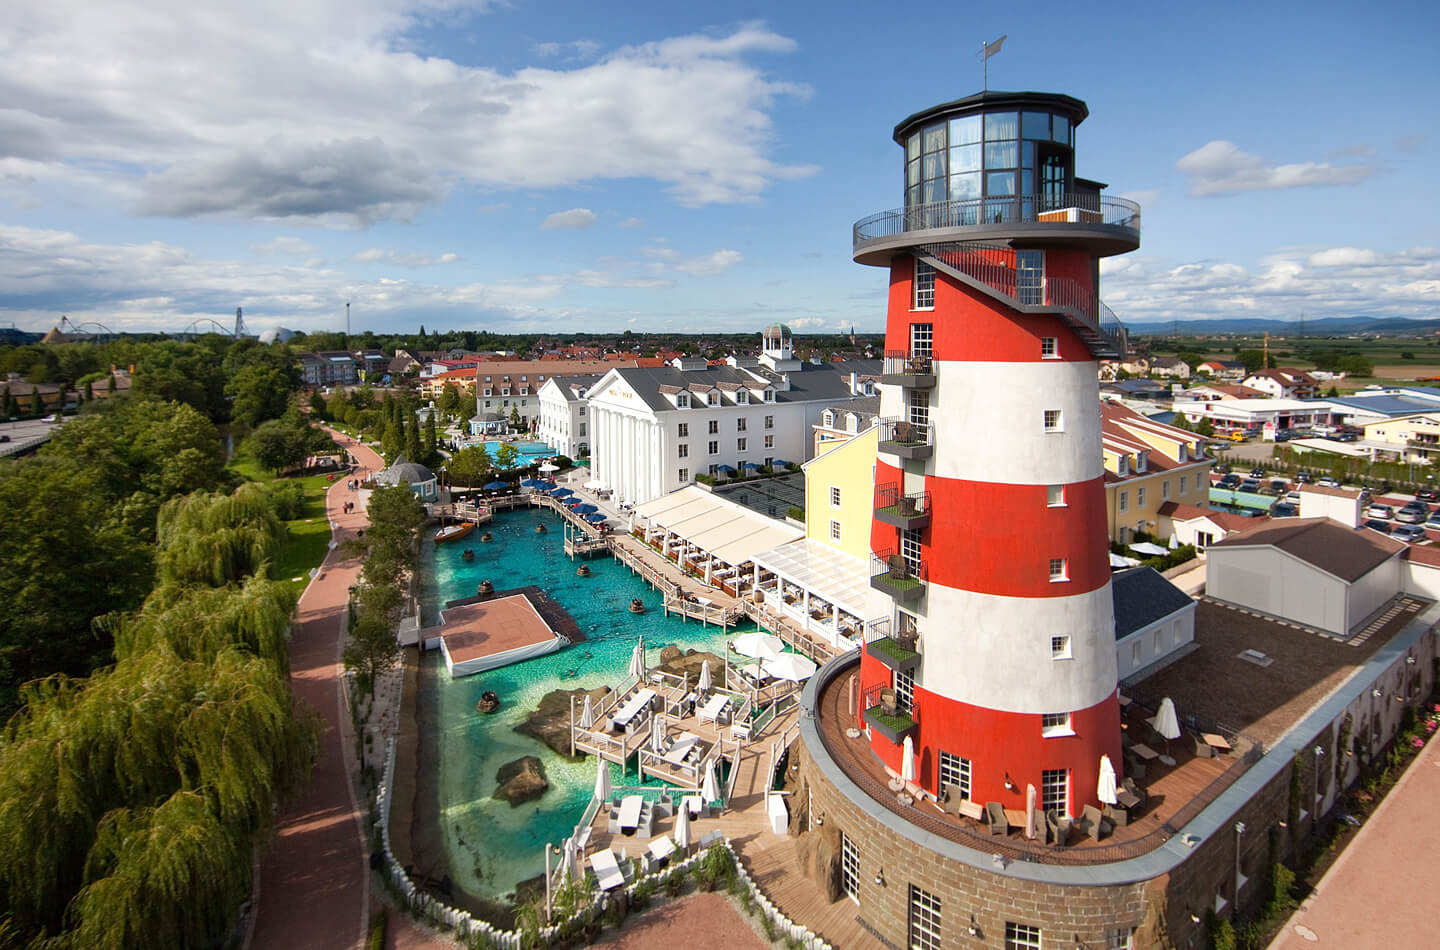 Hotels Europa-park